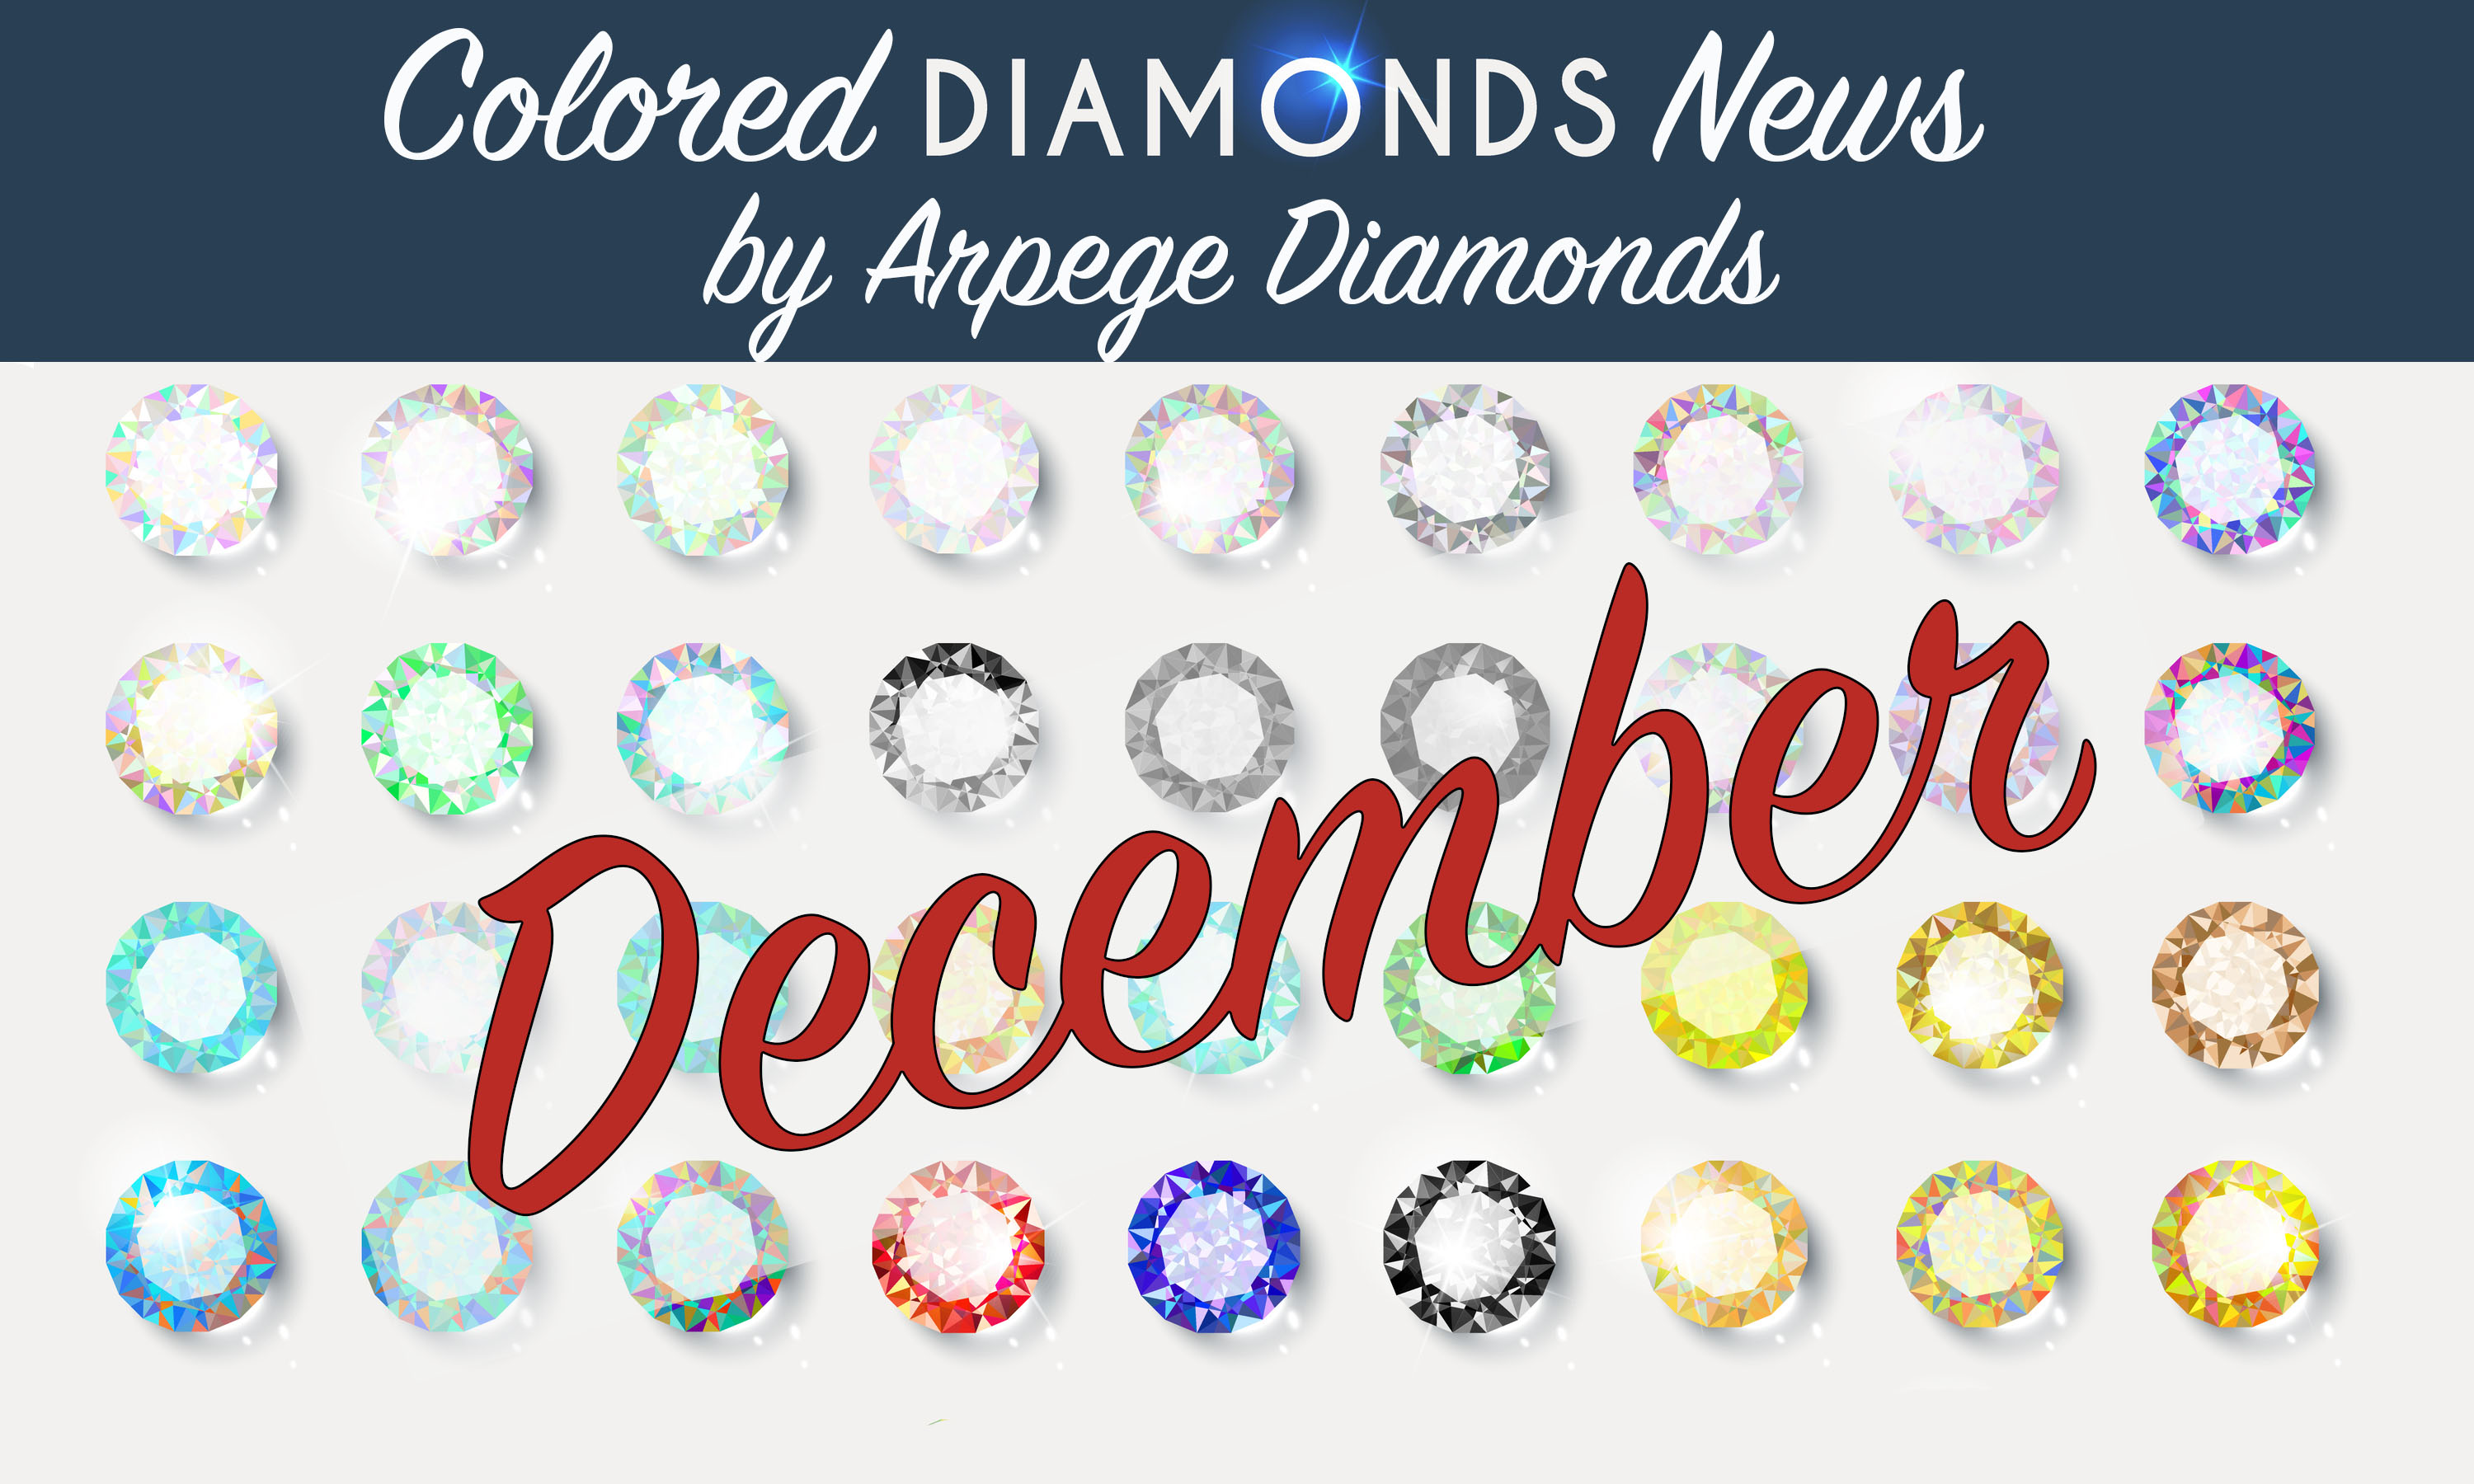 colored diamonds news december.jpg